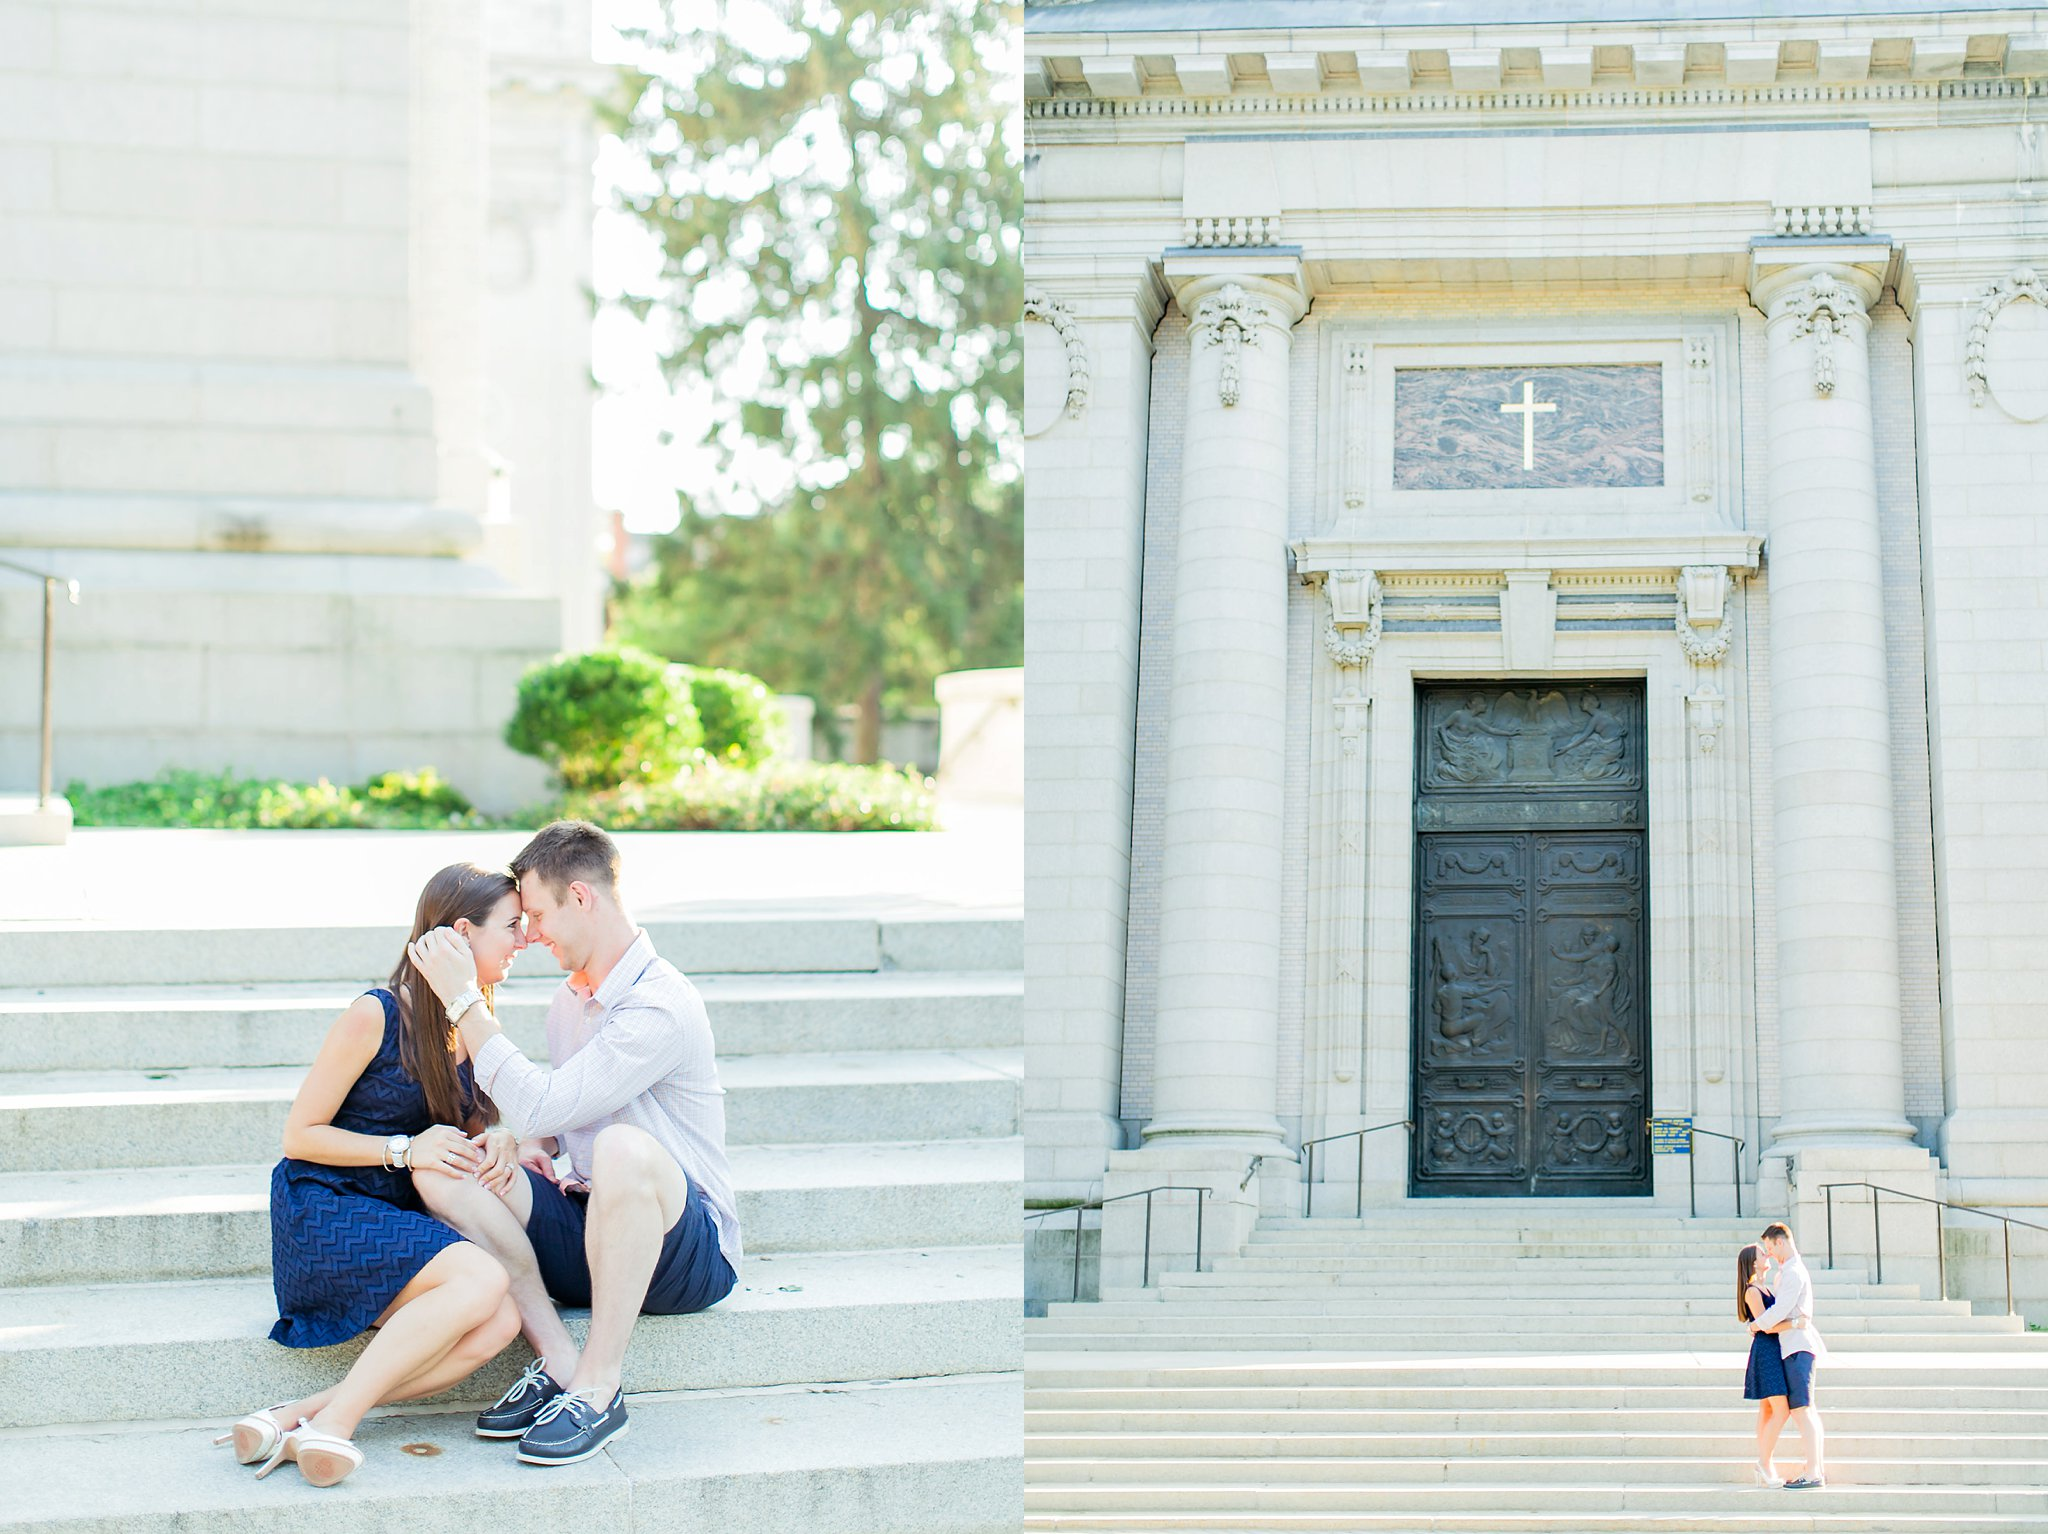 Naval Academy Engagement Photos Annapolis Wedding Photographer Megan Kelsey Photography Megan & Travis-36.jpg